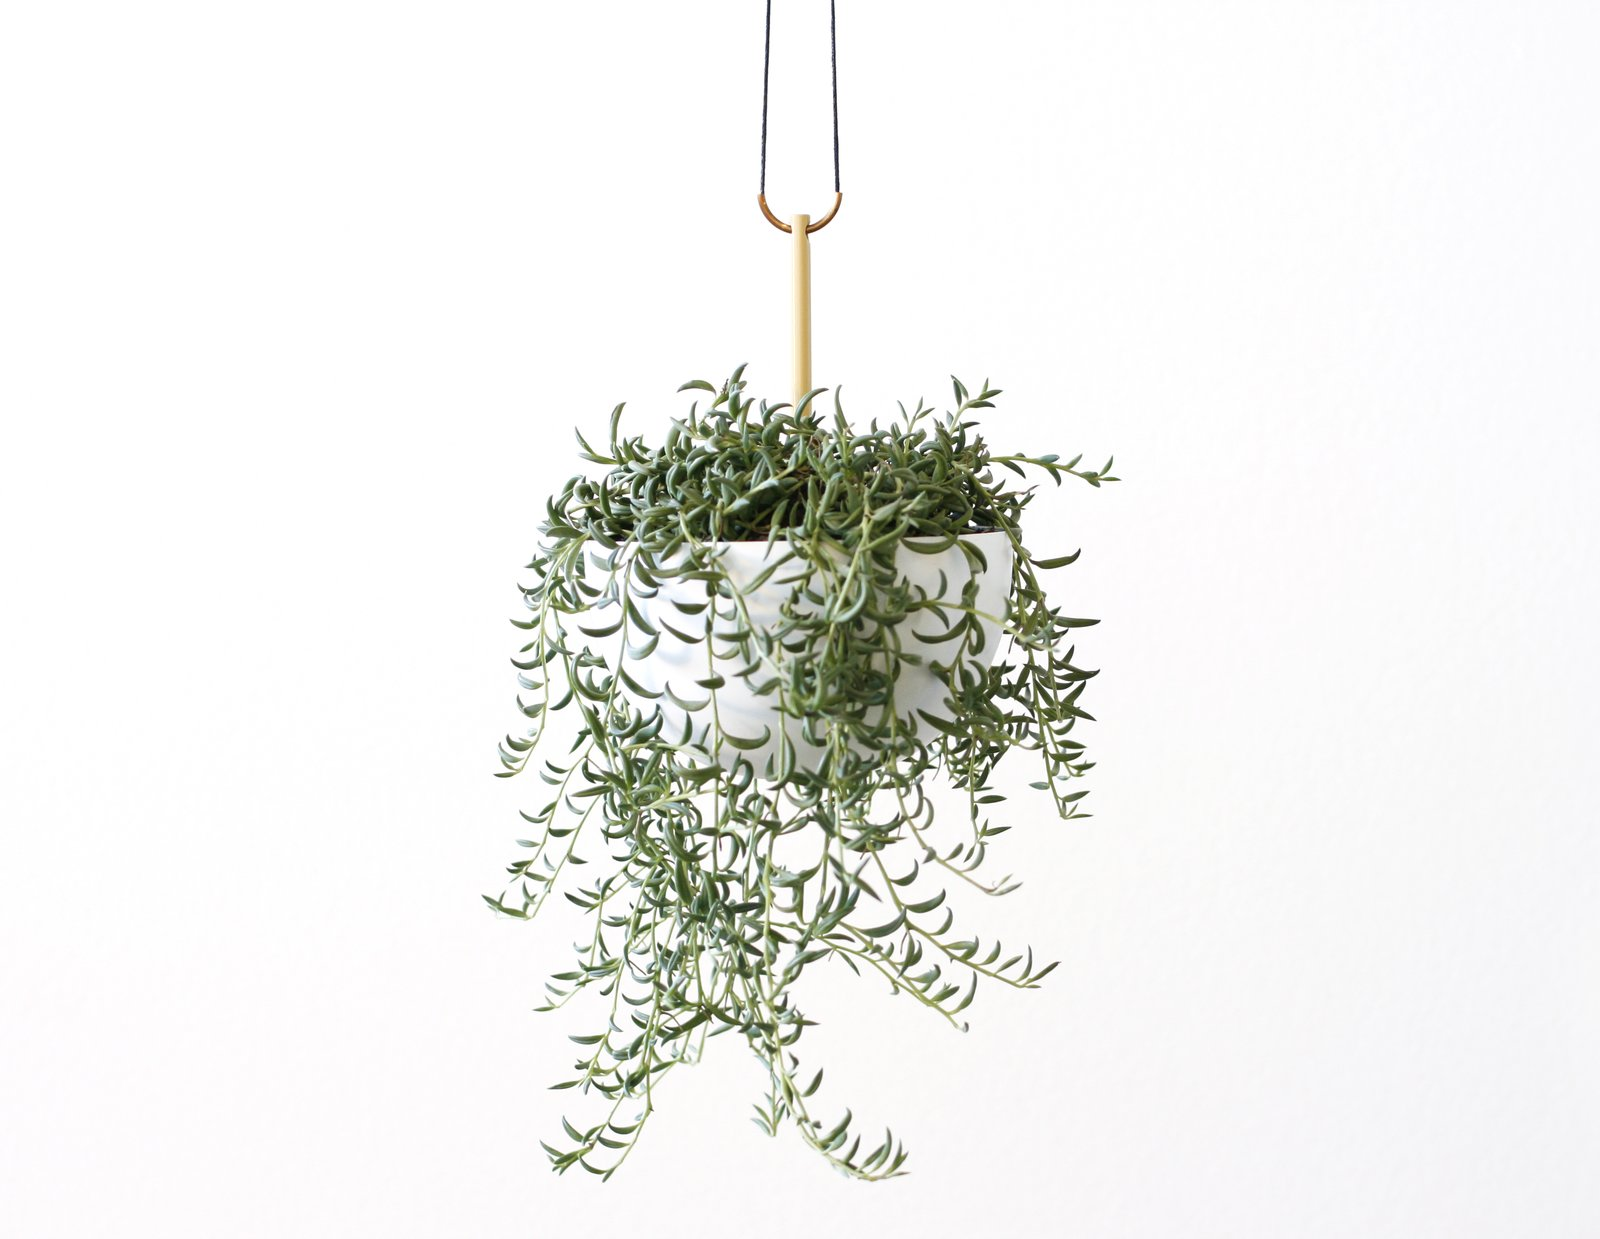 The Stem Hanging Planter presents an elegant play of materials. The planter is made from a spun aluminum bowl that rests on an interior stem—a steel rod that travels through the base of the bowl, through the plant's soil, and above the bowl where it hangs from a waxed black cotton cord. The result is a decidedly sculptural piece that carefully balances components to create an artful hanging planter.  Photo 4 of 11 in These 5 Interior Design Trends Will Reign Supreme in 2018 from Favorite Products from BKLYN Designs